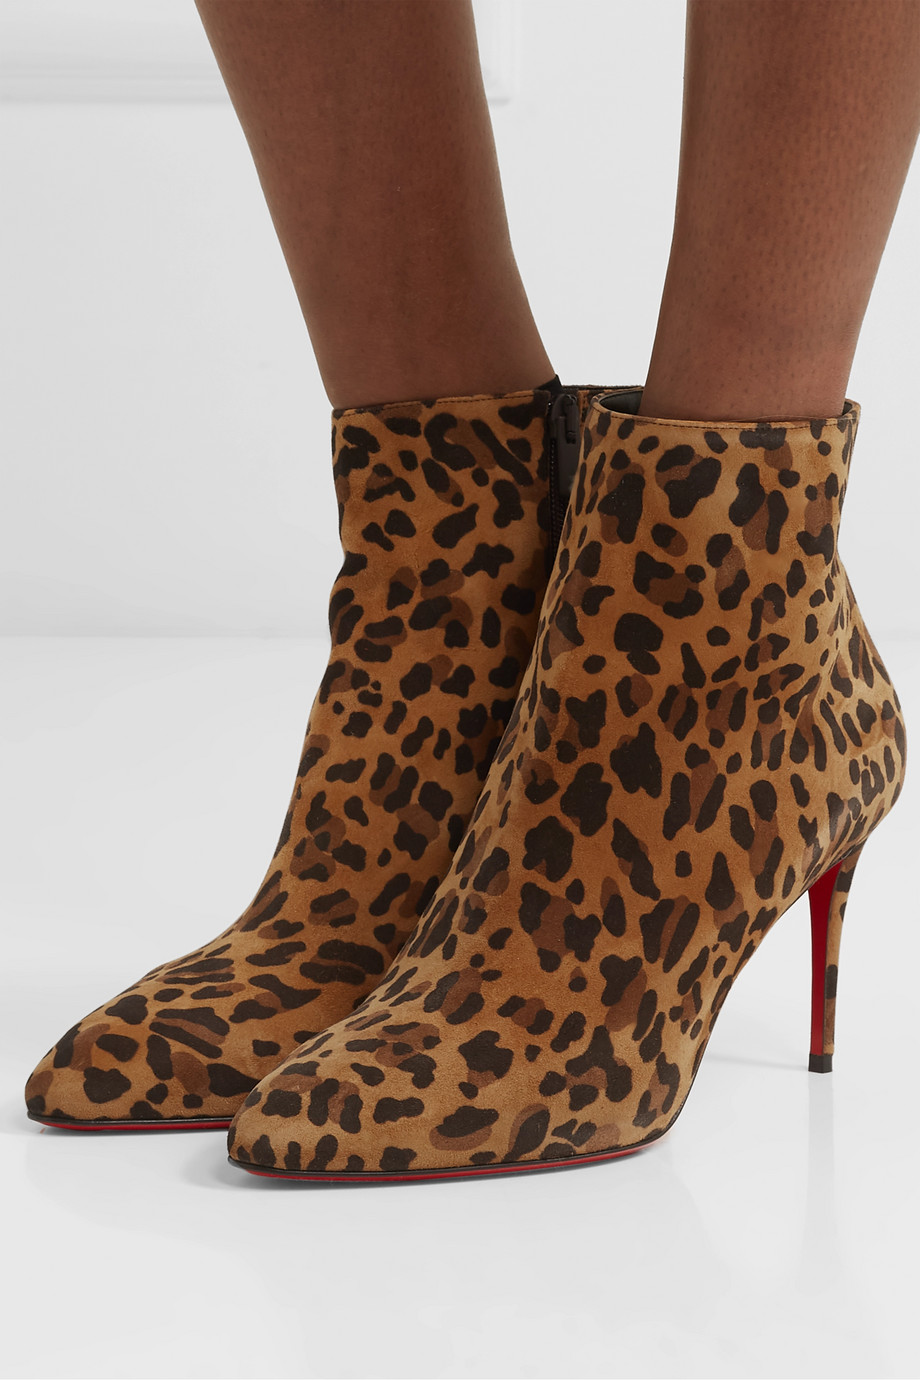 Christian Louboutin Eloise 85 leopard-print suede ankle boots